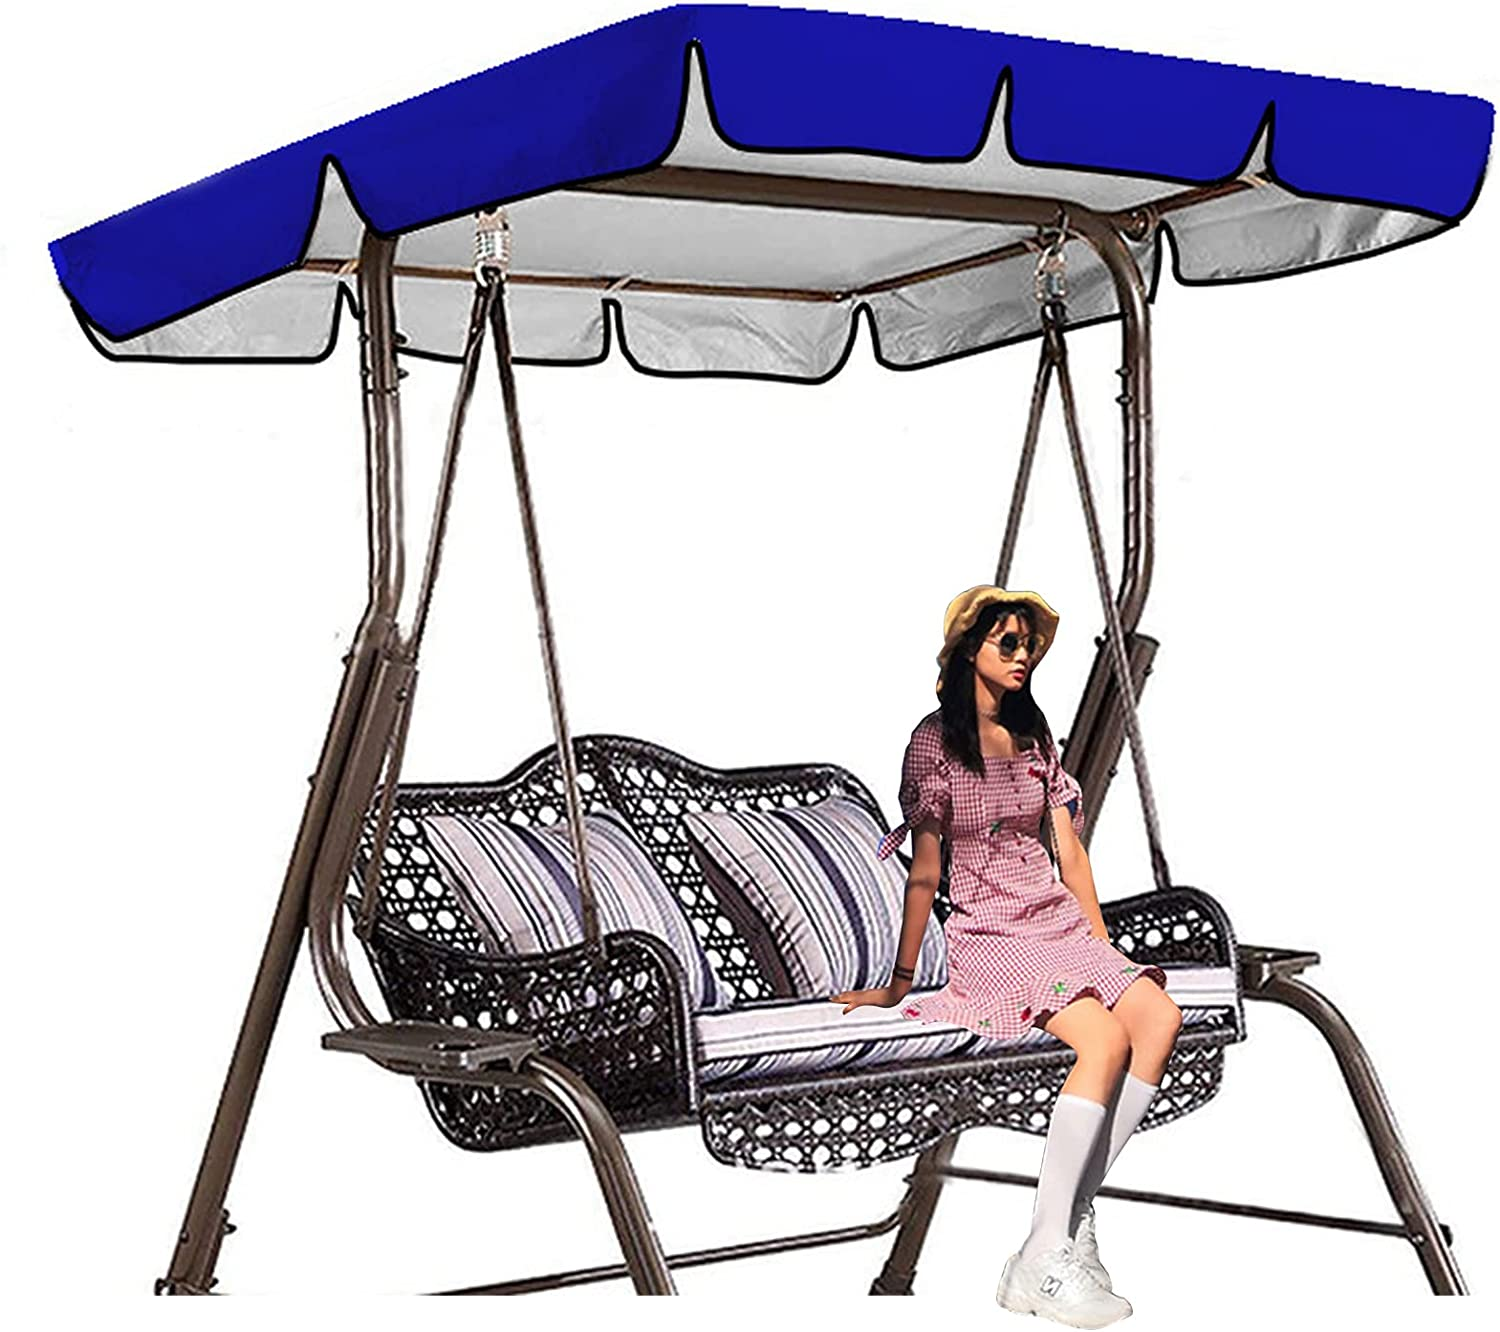 DFWYG 2021new shipping free Swing top Replacement Canopy Waterproof 2021 autumn and winter new for Swin Sunshade